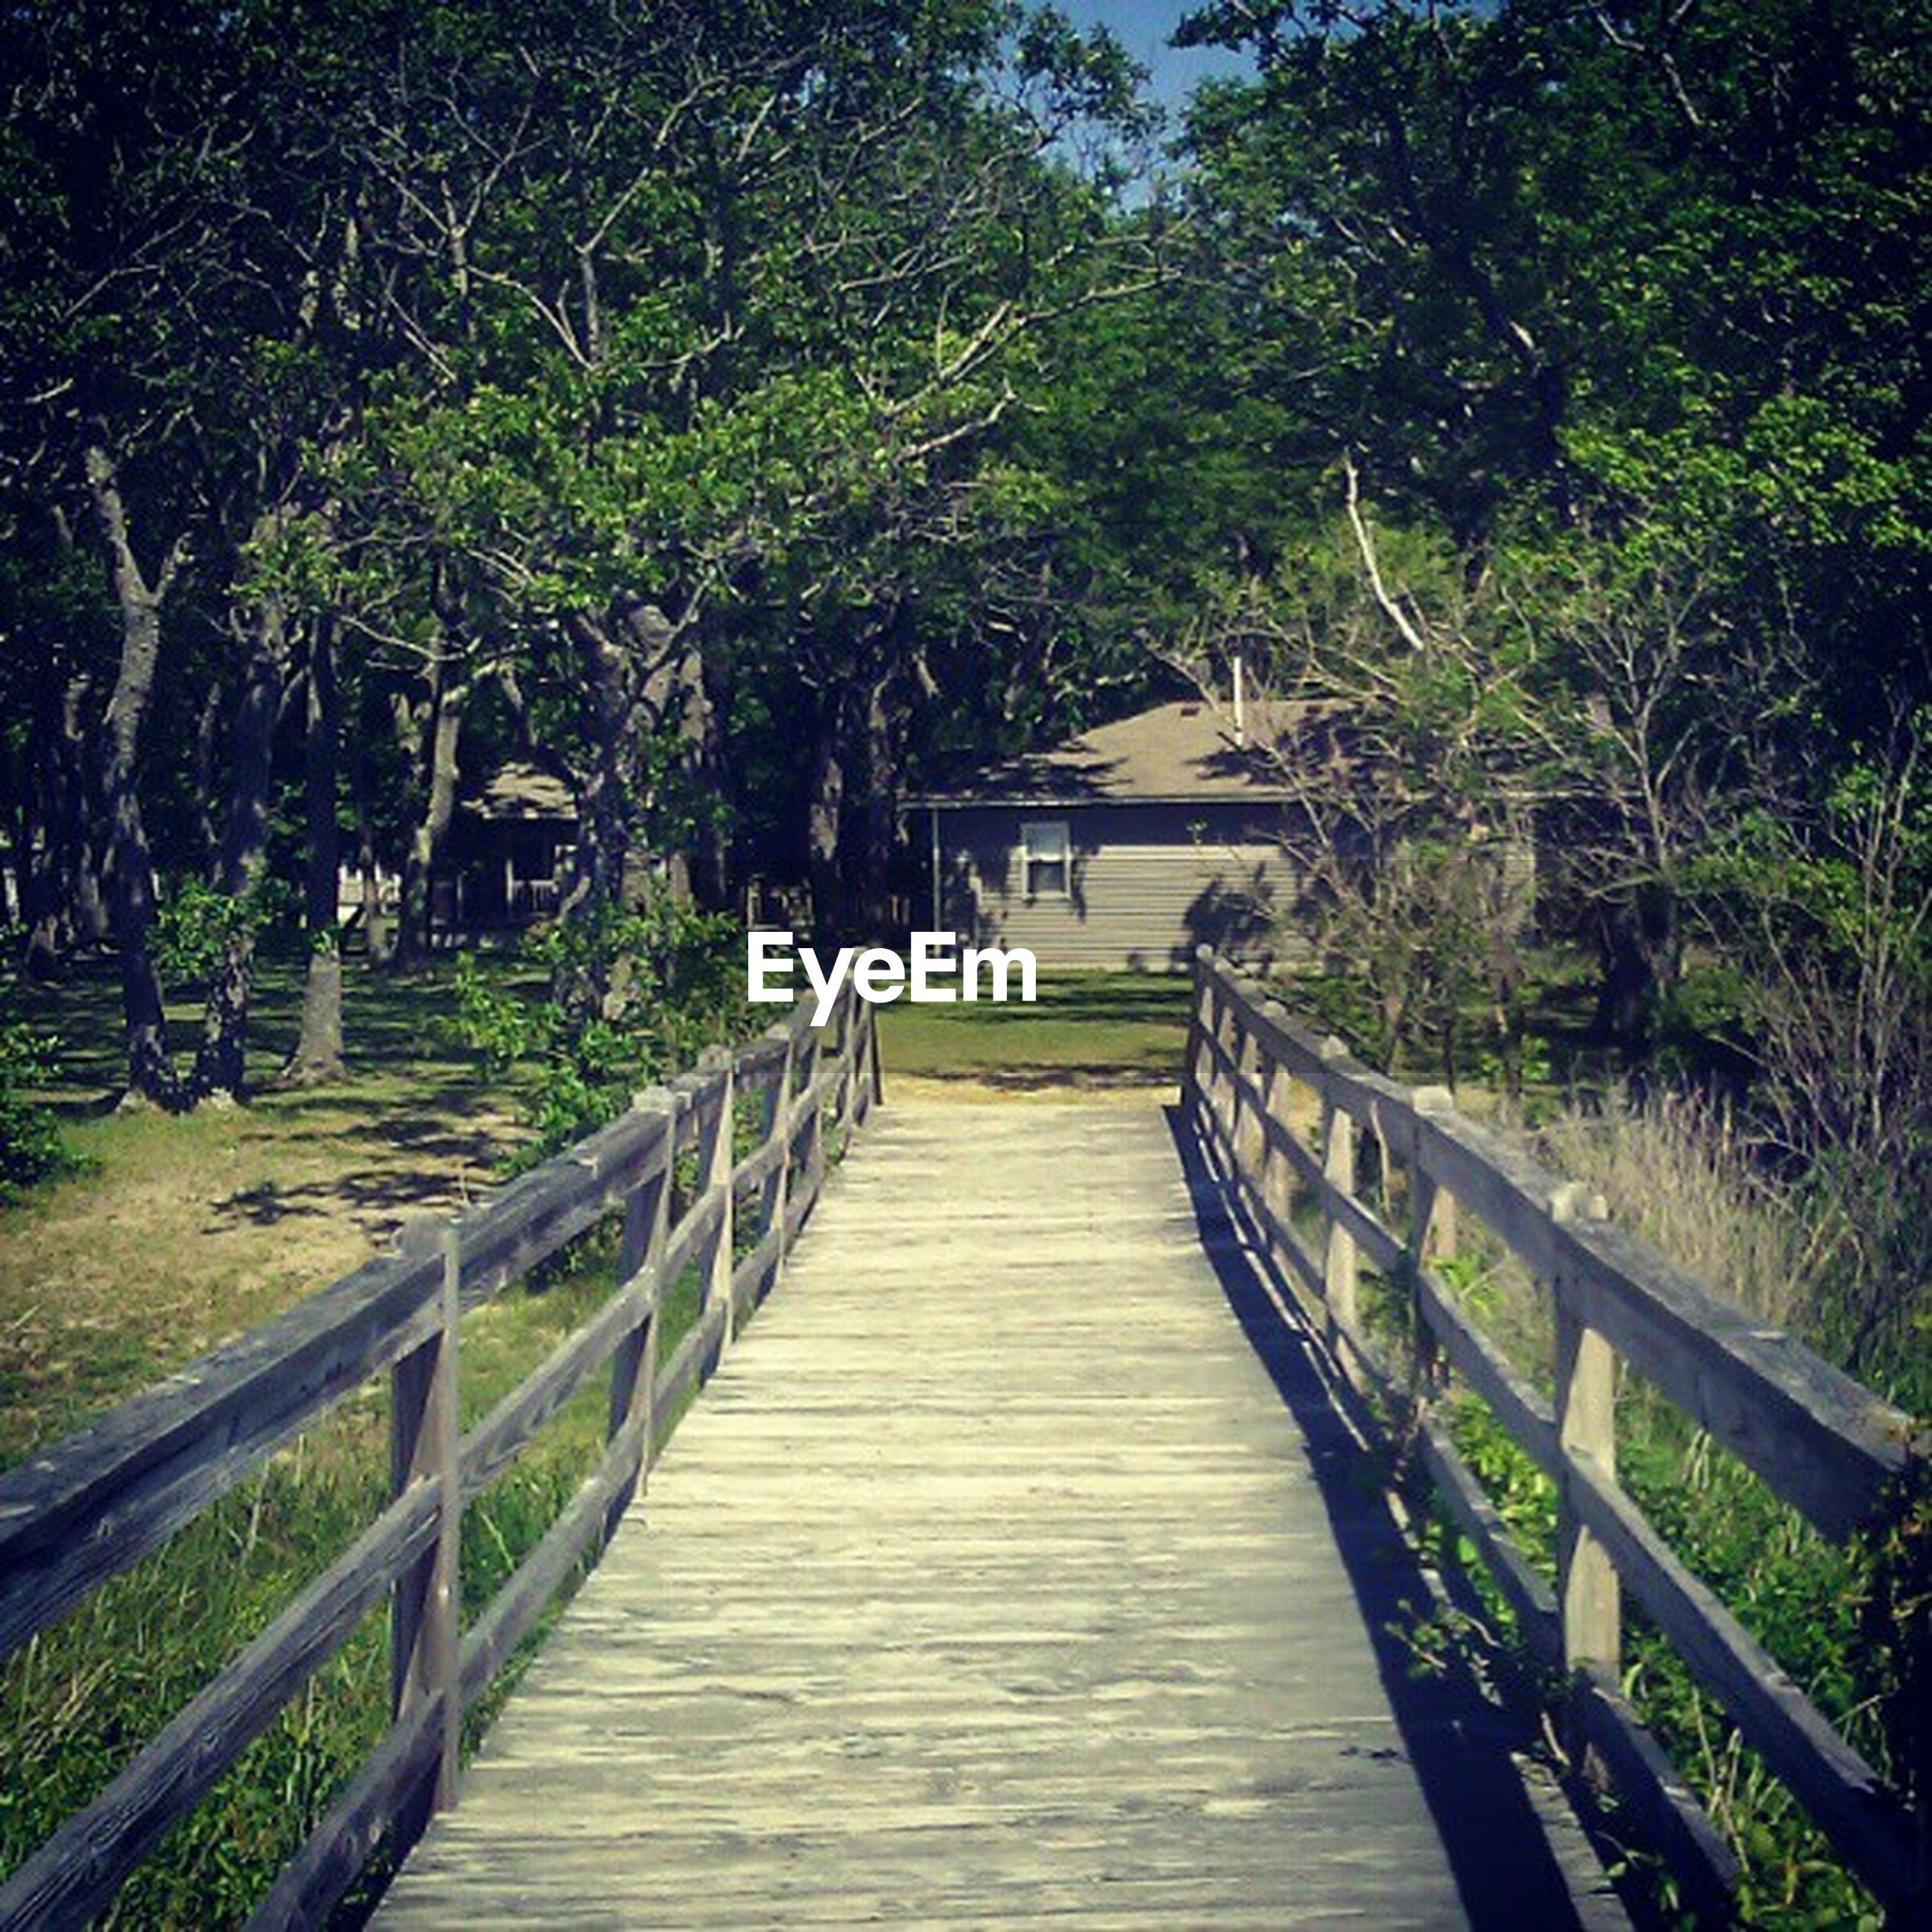 the way forward, tree, tranquility, diminishing perspective, railing, walkway, boardwalk, growth, nature, tranquil scene, narrow, vanishing point, wood - material, footbridge, pathway, footpath, green color, beauty in nature, long, empty